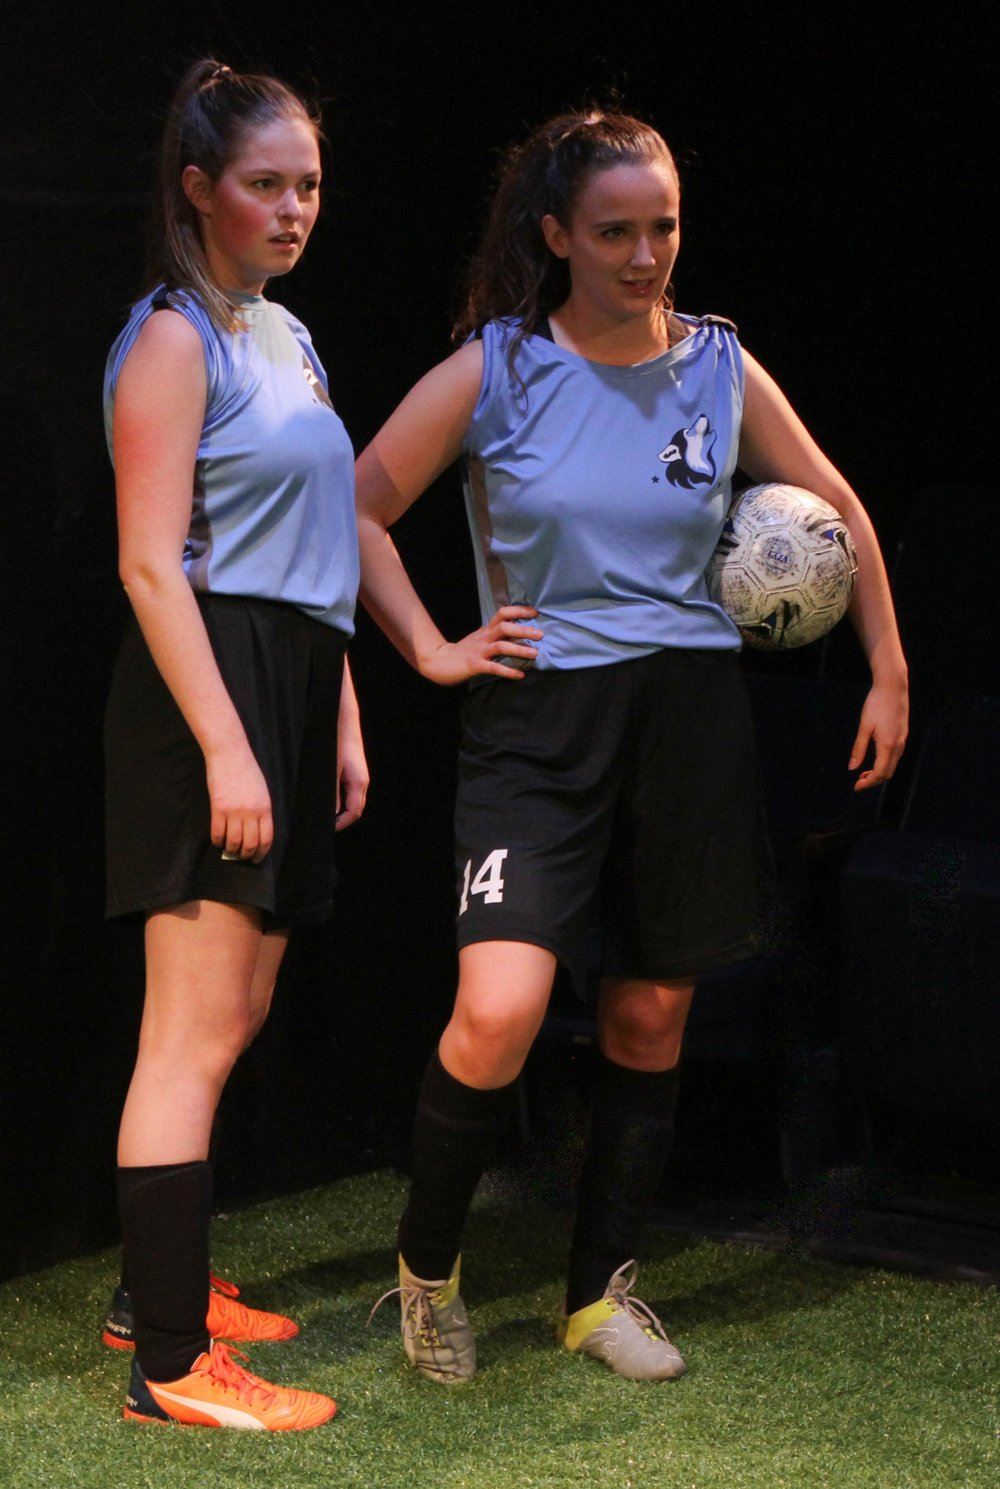 Production photos by: Ron Reed  Featuring: Danielle Klaudt and Montserrat Videla